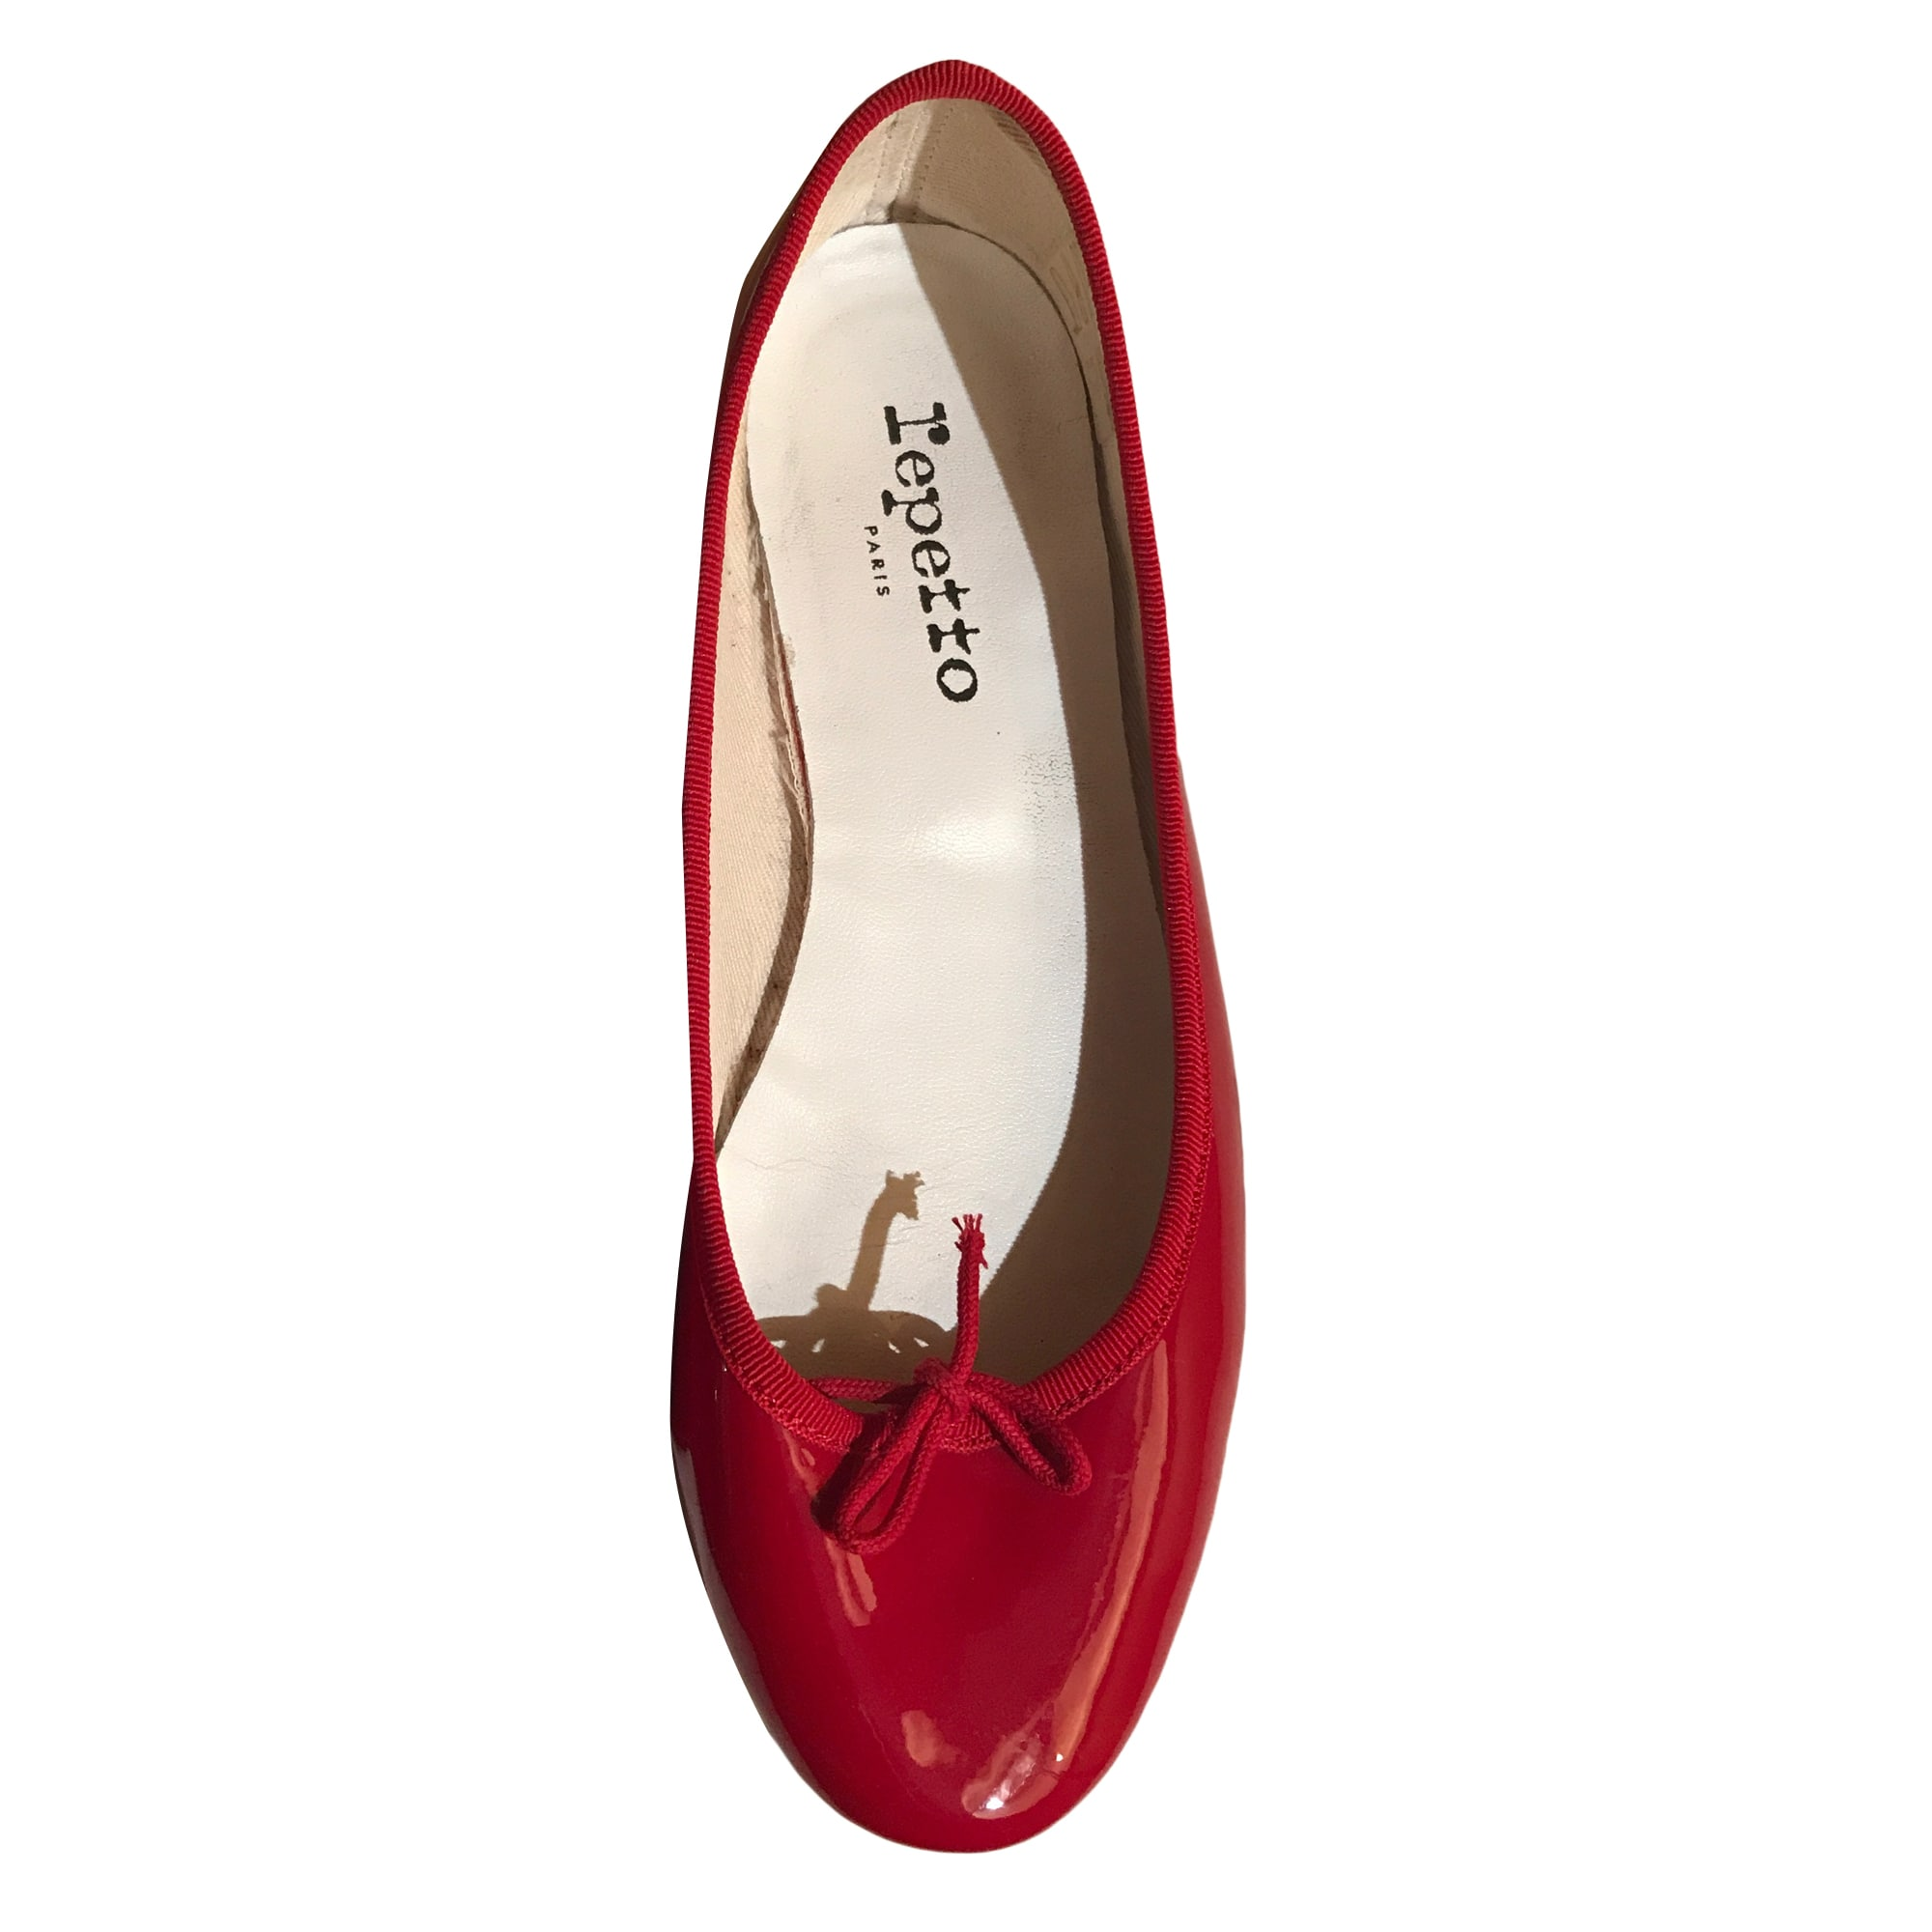 Ballerines REPETTO 39 rouge vendu par M.n-b - 6792223 b845bf67a2bb